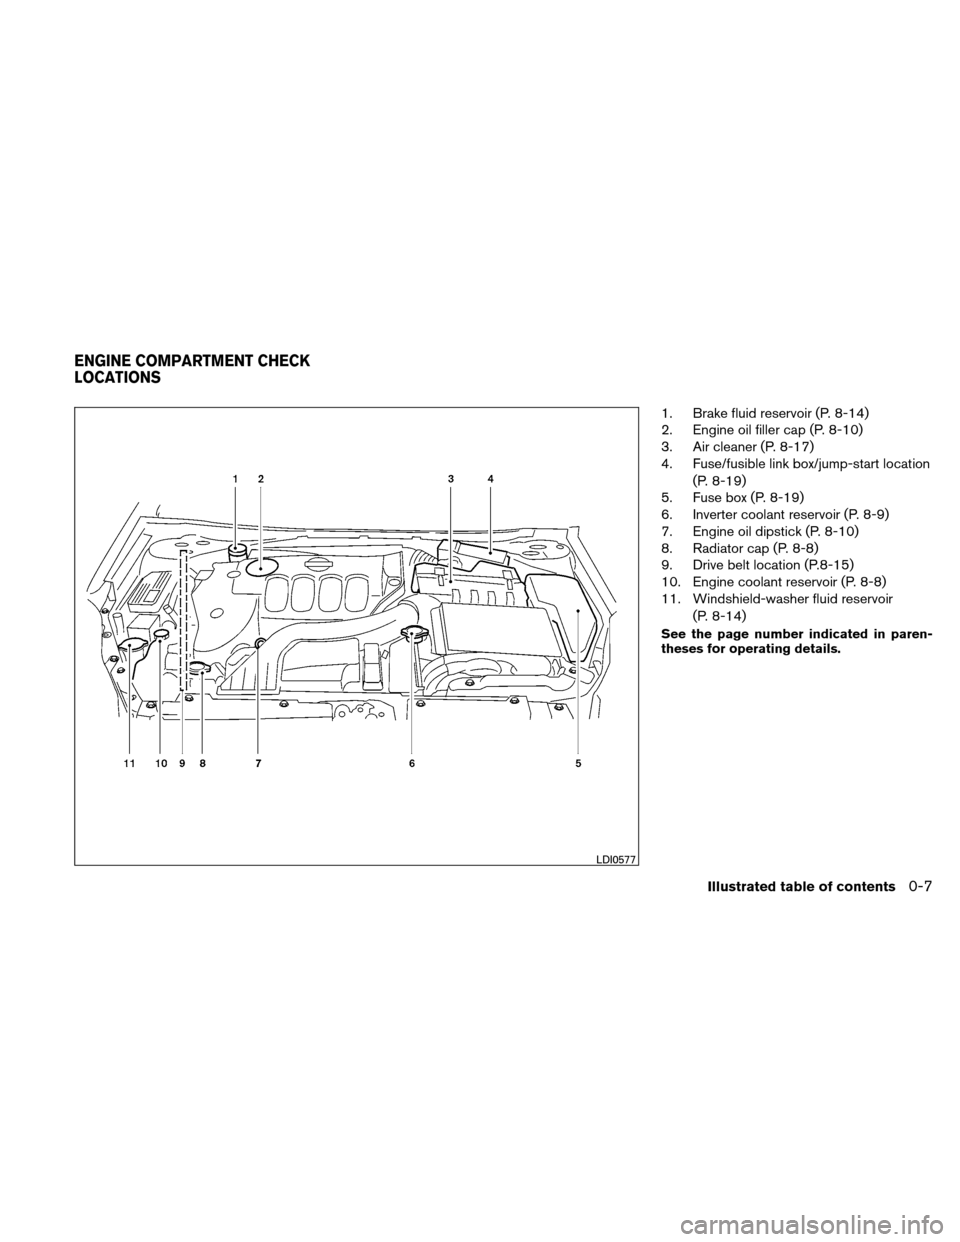 NISSAN ALTIMA HYBRID 2010 L32A / 4.G Owners Manual, Page 26